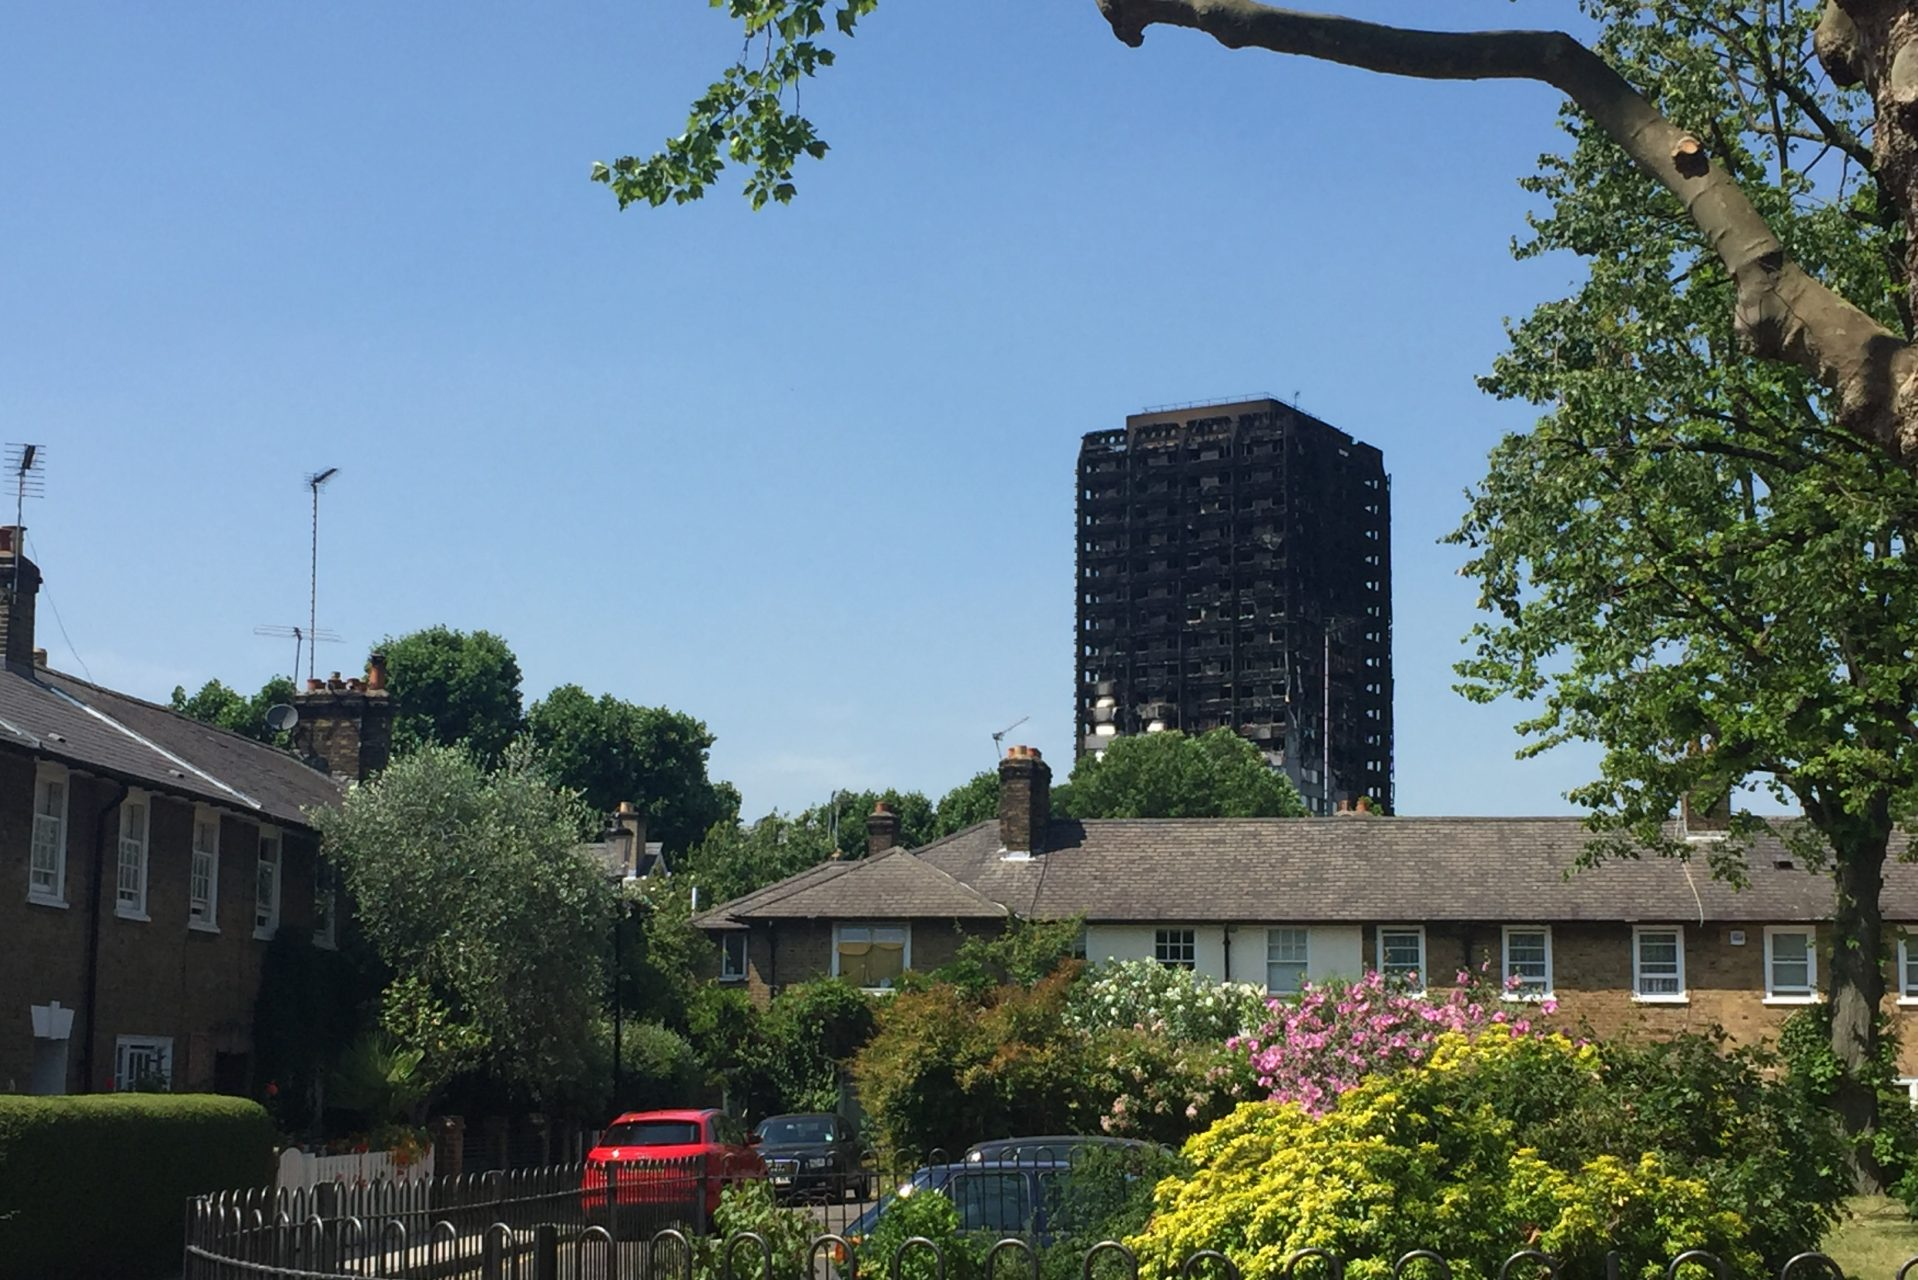 Picture of Grenfell Tower in the distance with houses in the forefront